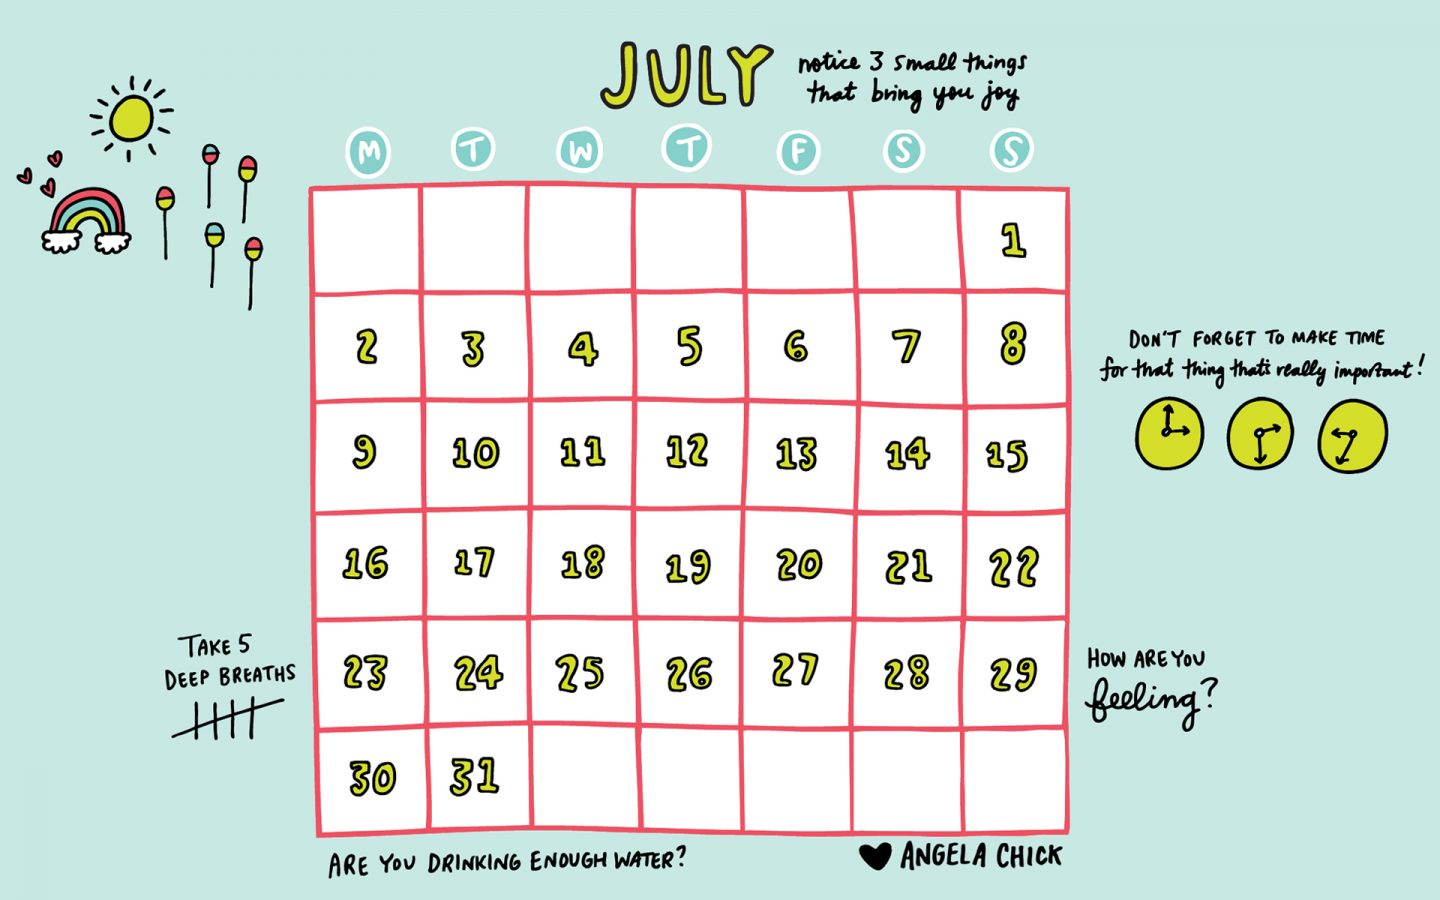 free june 2018 calendar desktop download by Angela Chick